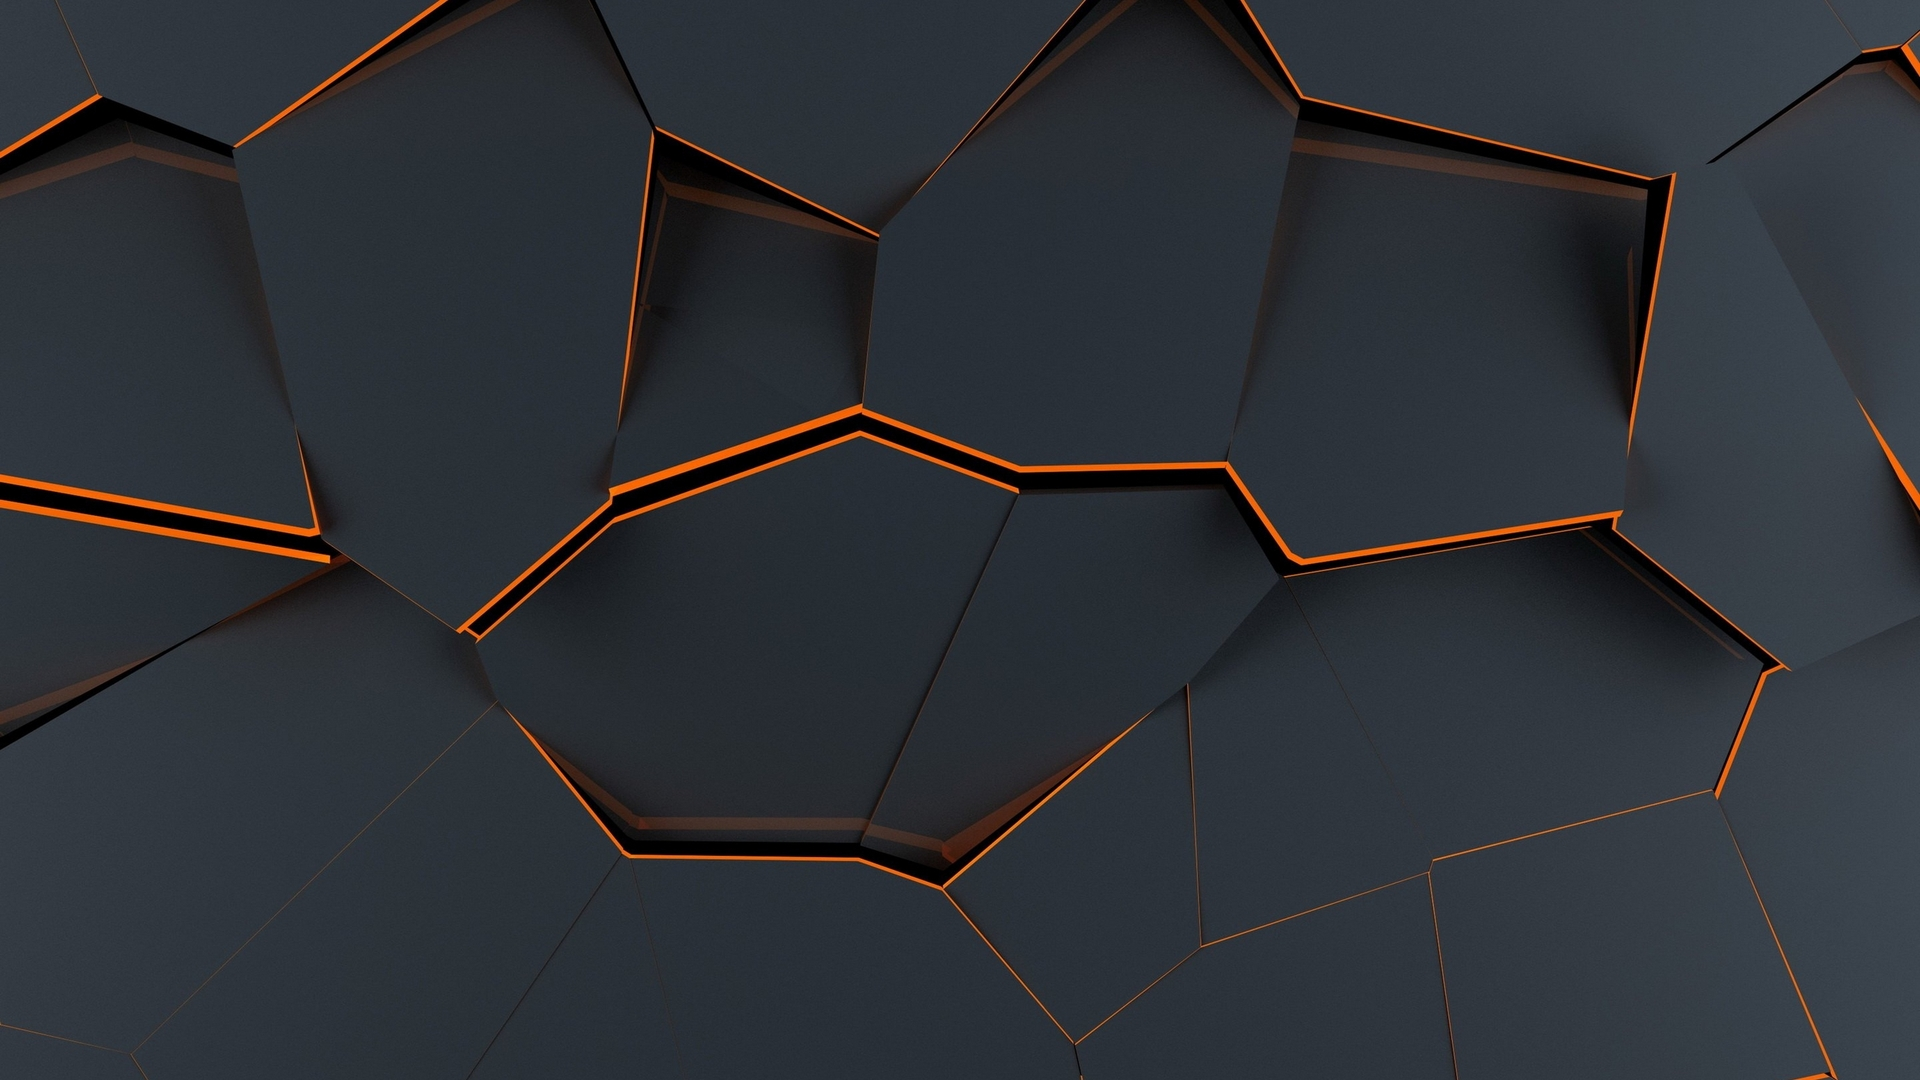 1920x1080 Polygon Material Design Abstract Laptop Full Hd 1080p Hd